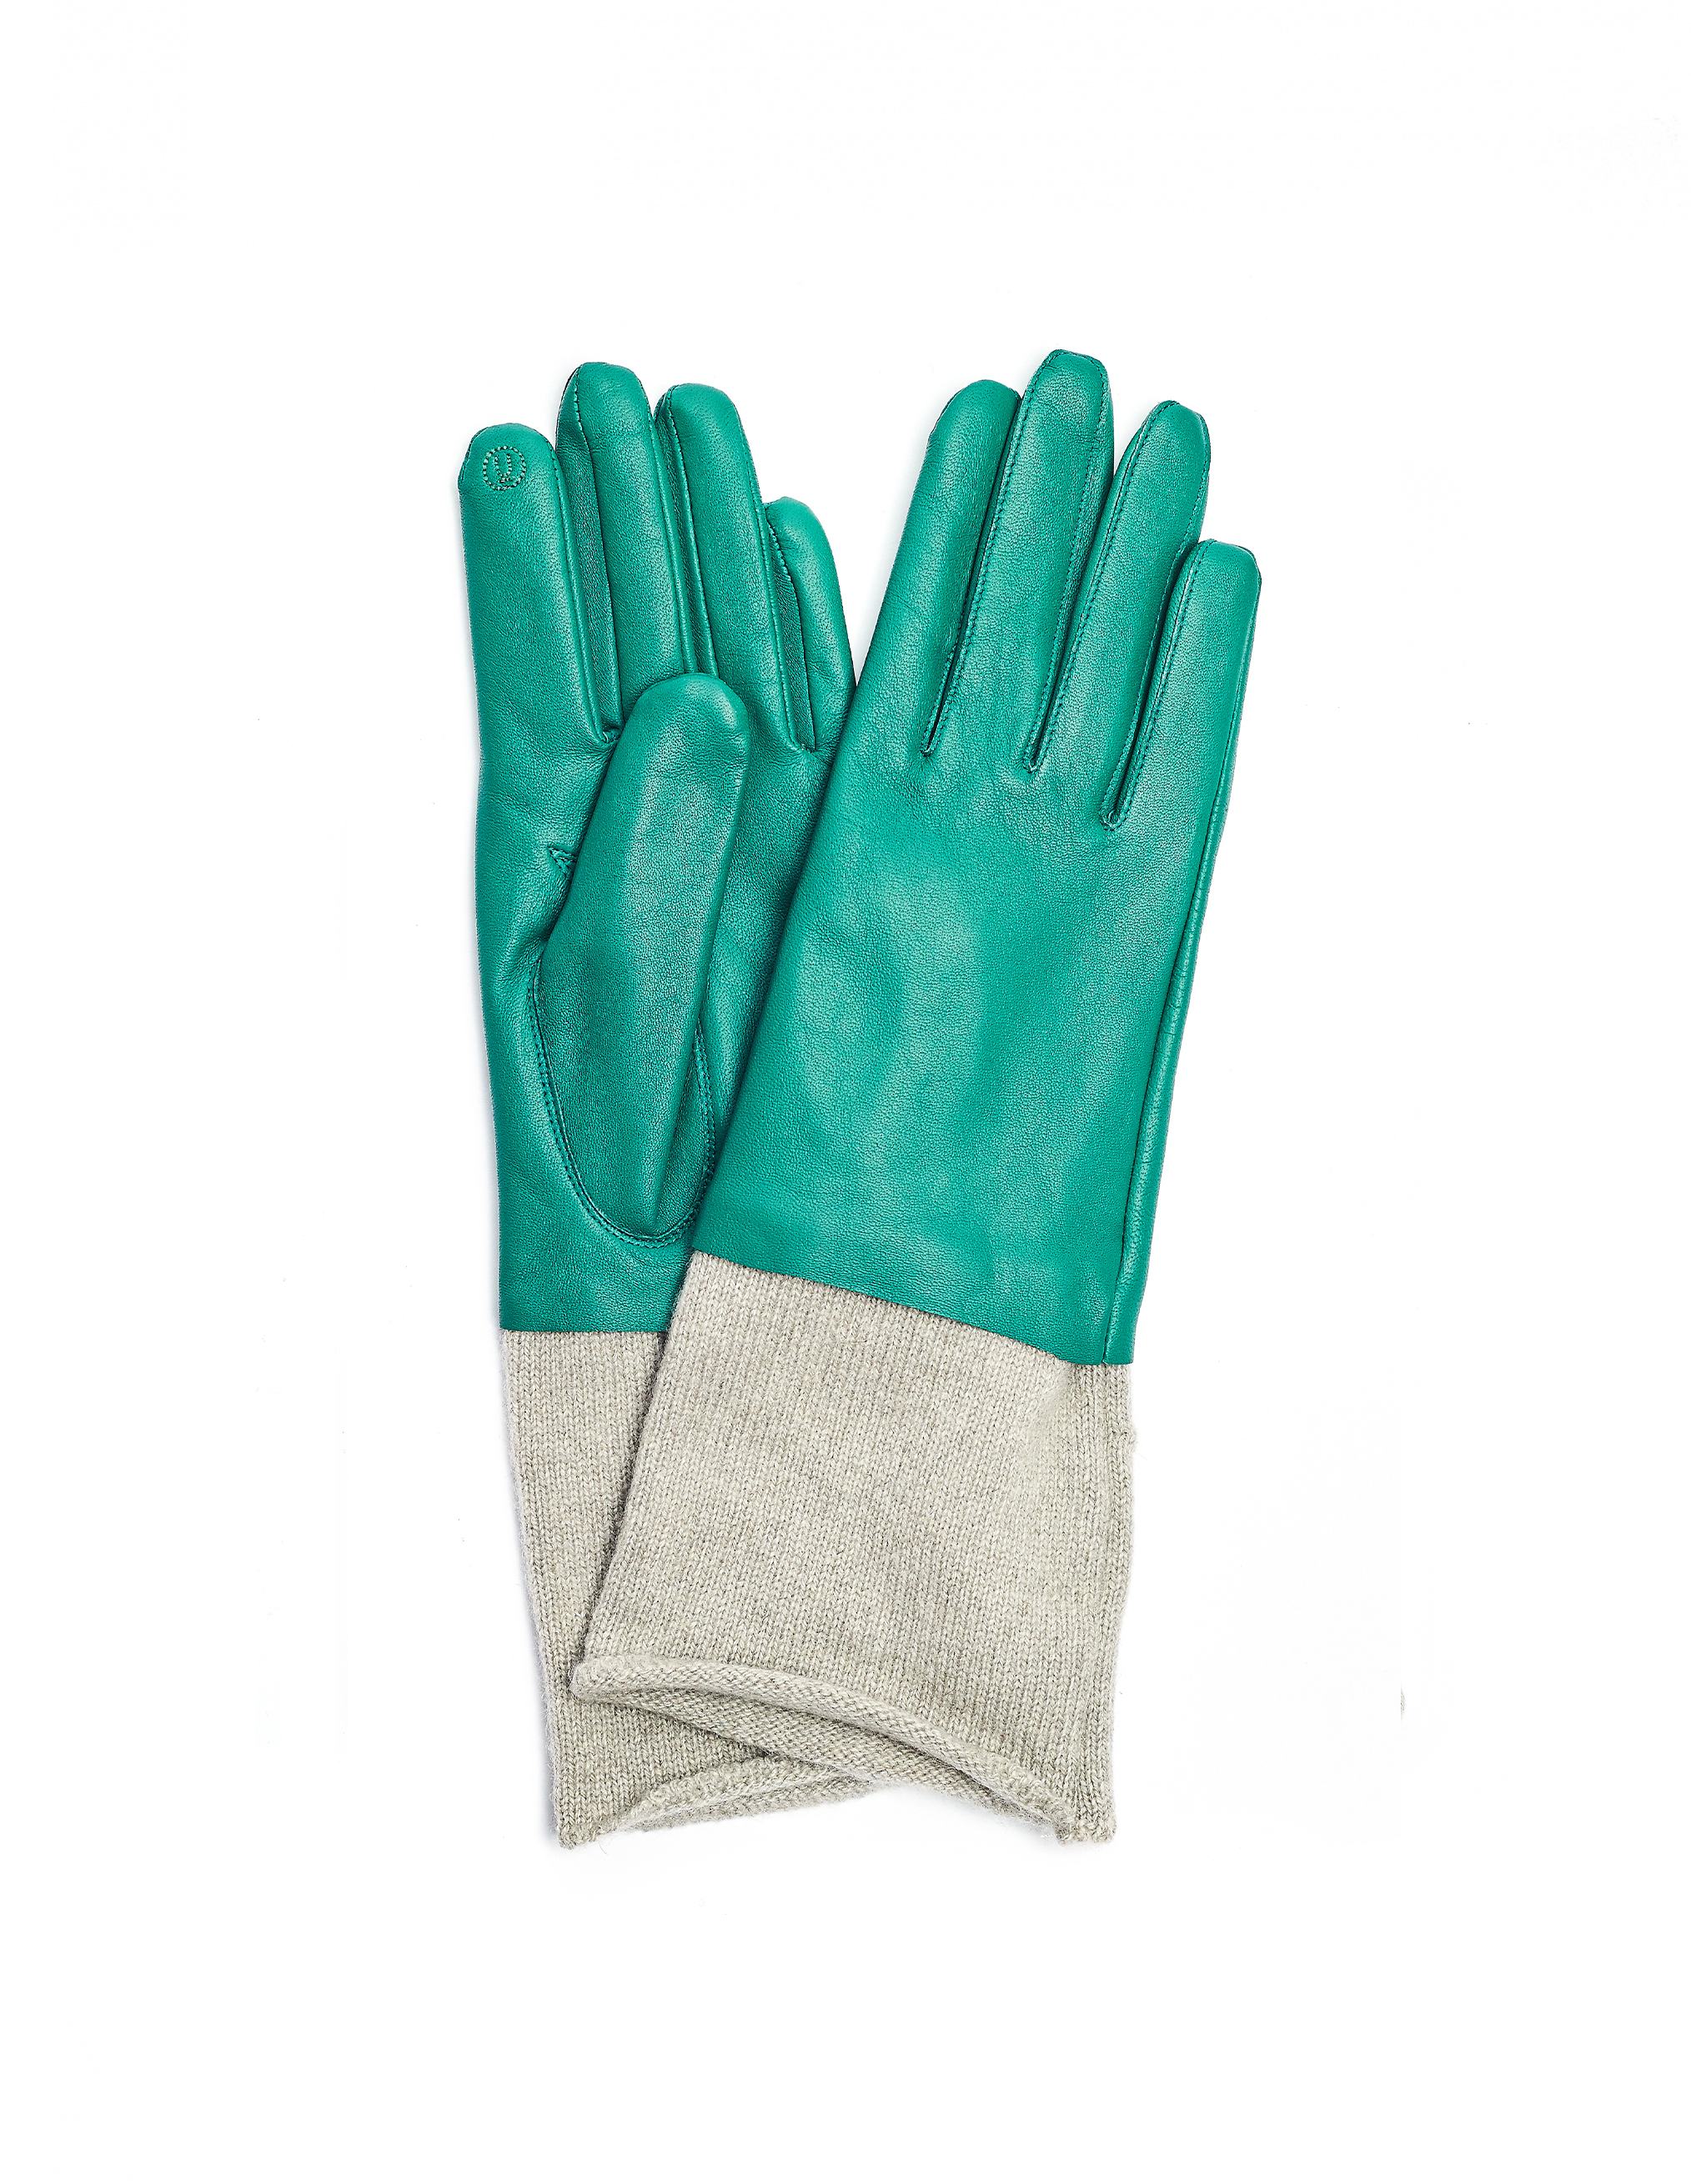 Undercover Green Leather & Cashmere Gloves